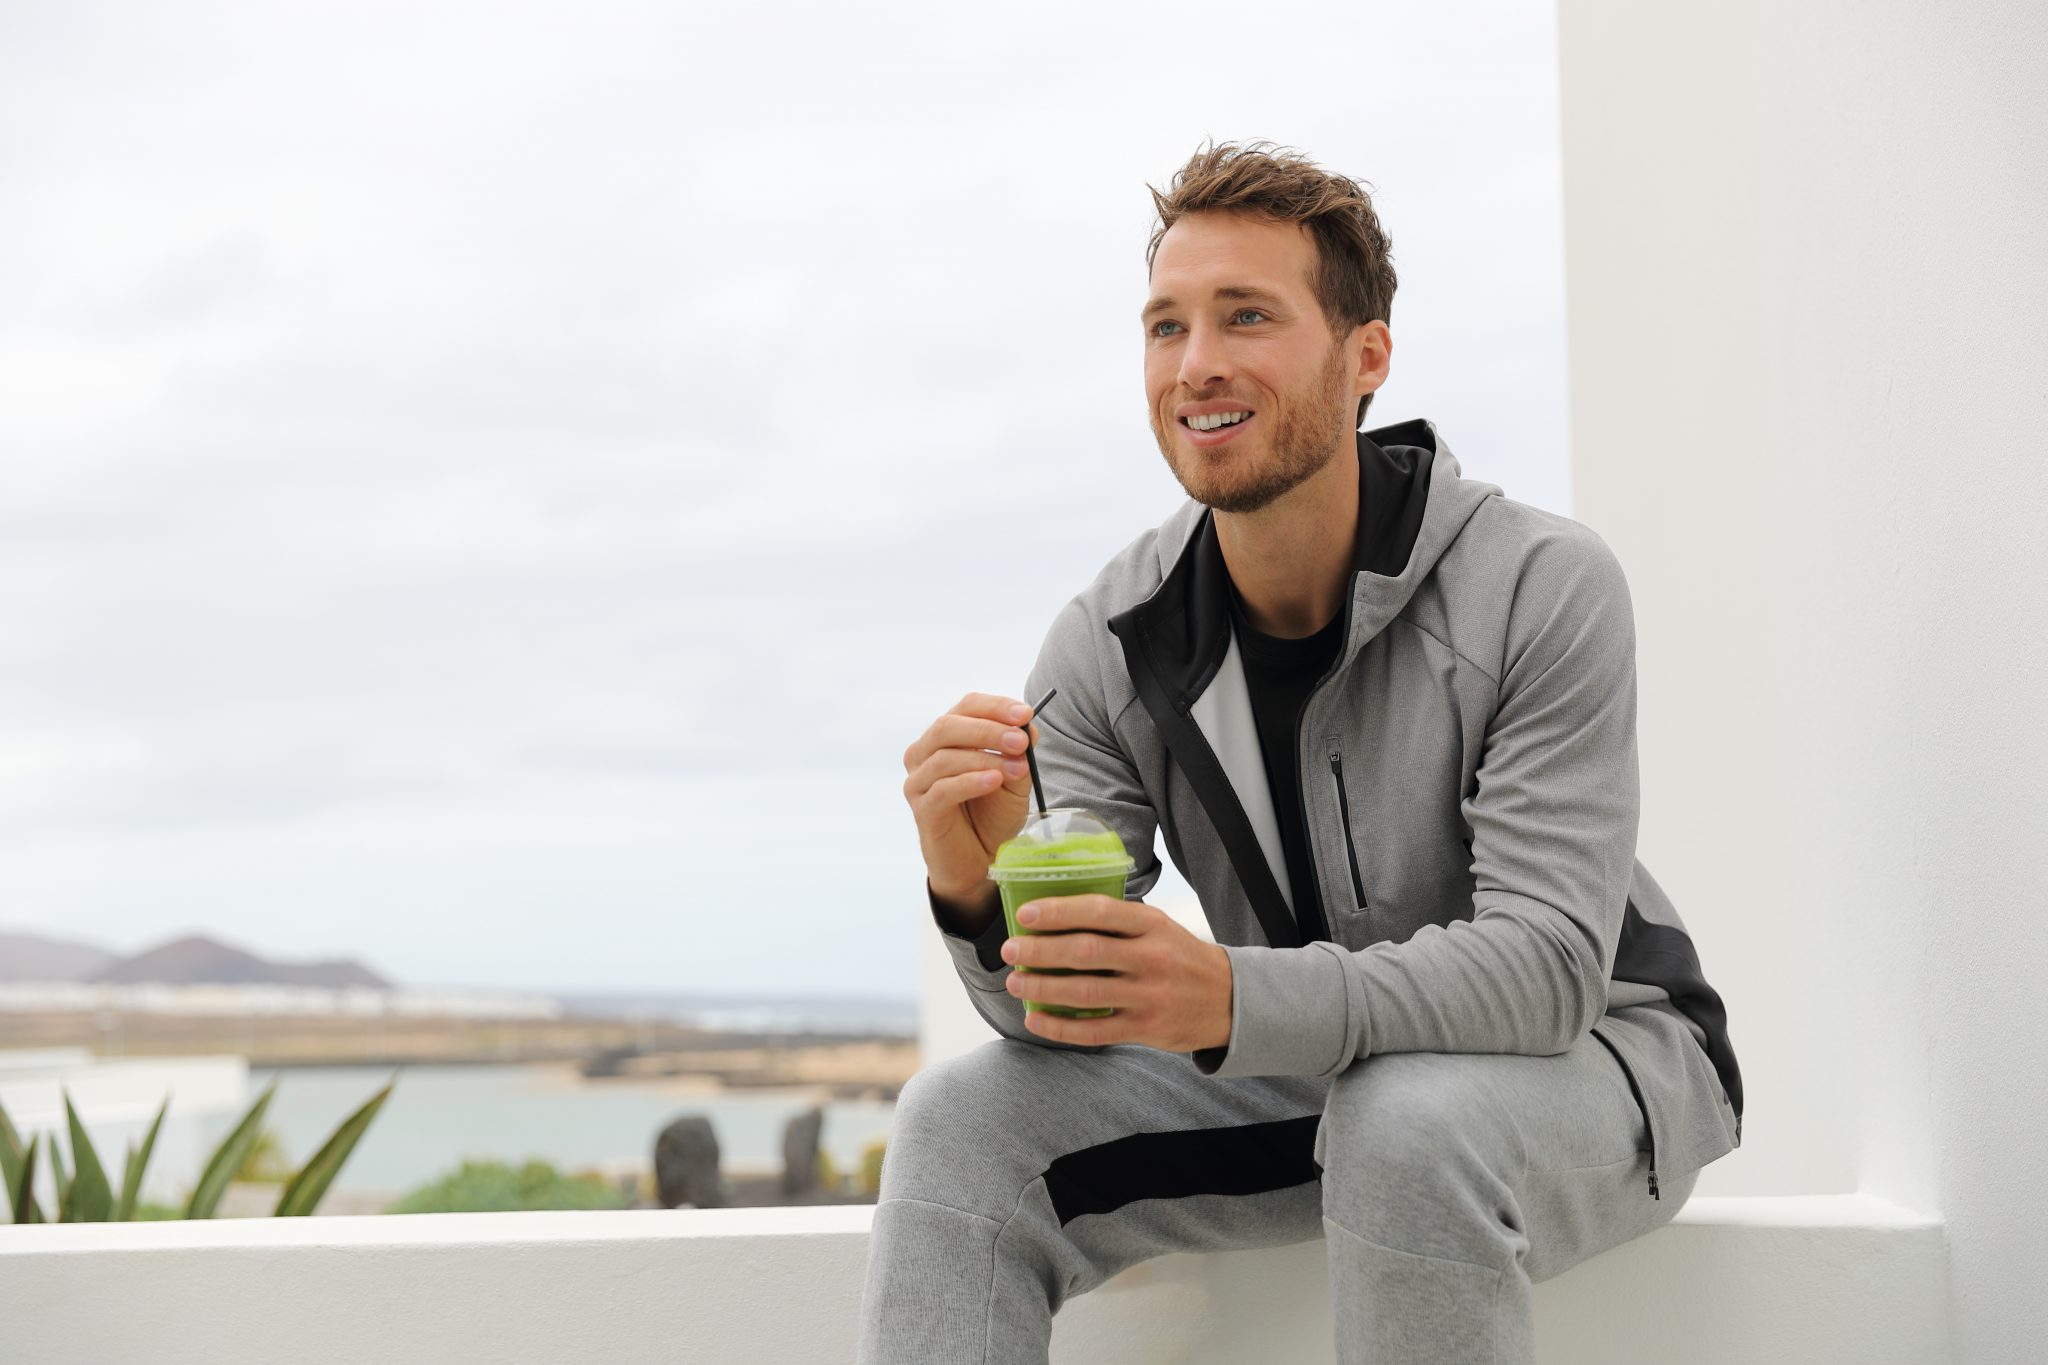 Photo of man sitting outside drinking green juice for a cleanse diet